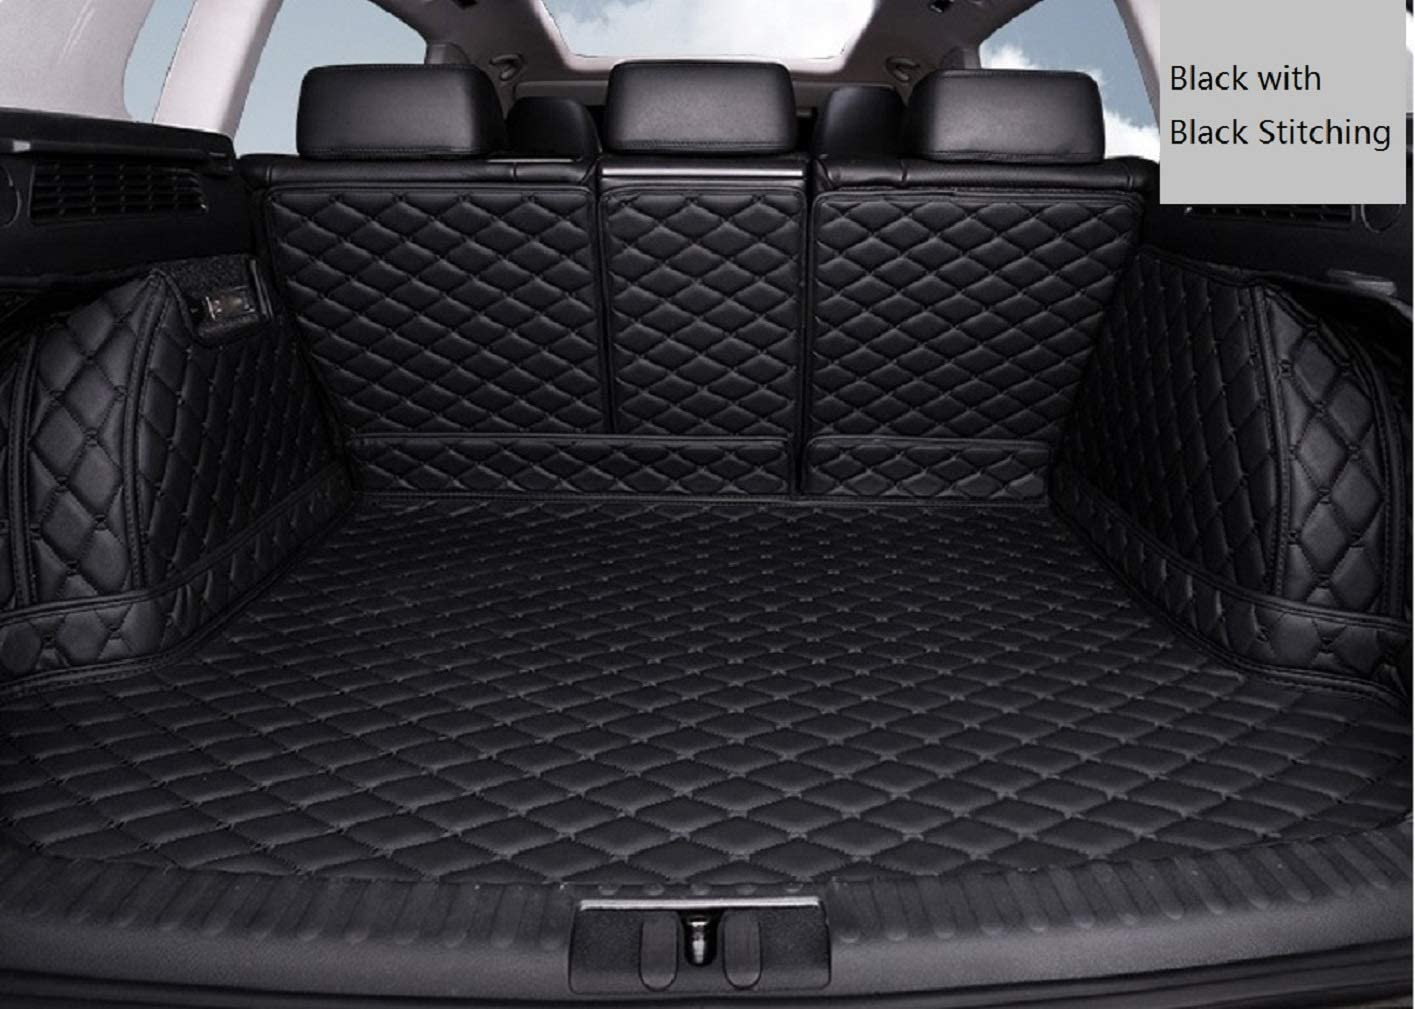 Bonus-Mats Custom Fit All-Weather Full Coverage Waterproof Car Cargo Liner Trunk Mat for Alfa Romeo Stelvio with Subwoofer on Left Black with Black Stitching